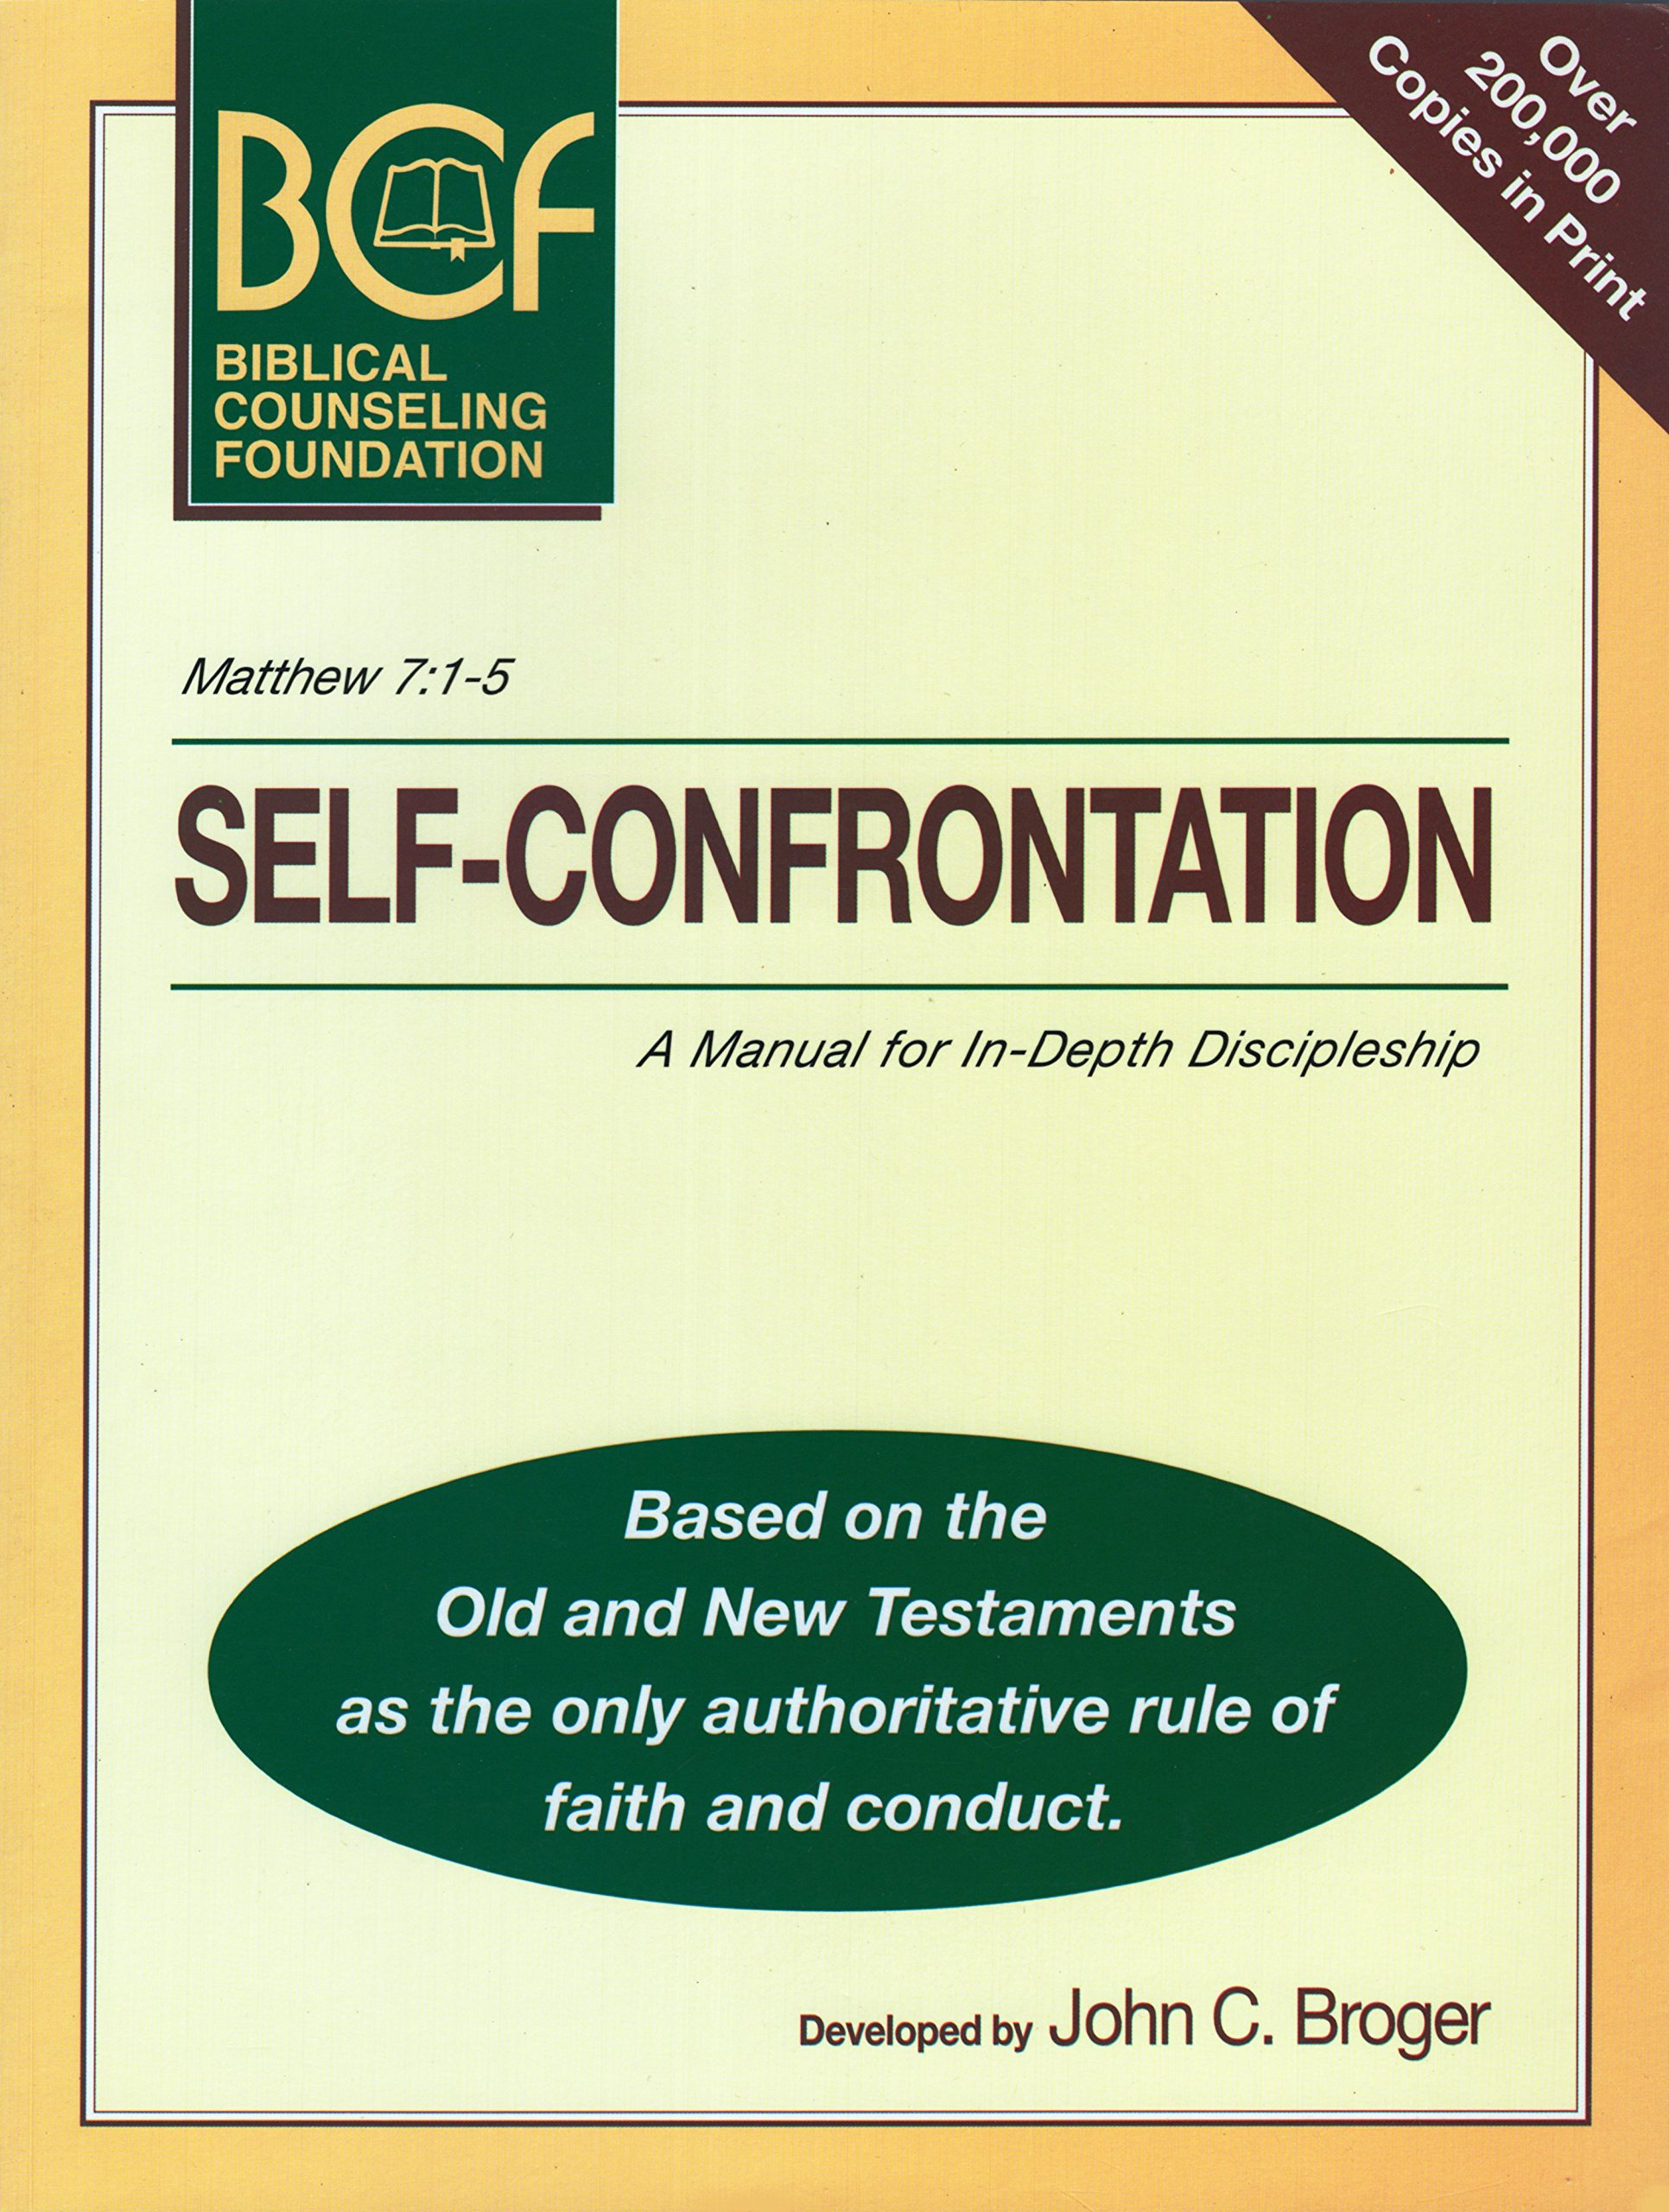 Self-Confrontation: A Manual for In-Depth Biblical Discipleship: John C.  Broger: 9781878114013: Amazon.com: Books